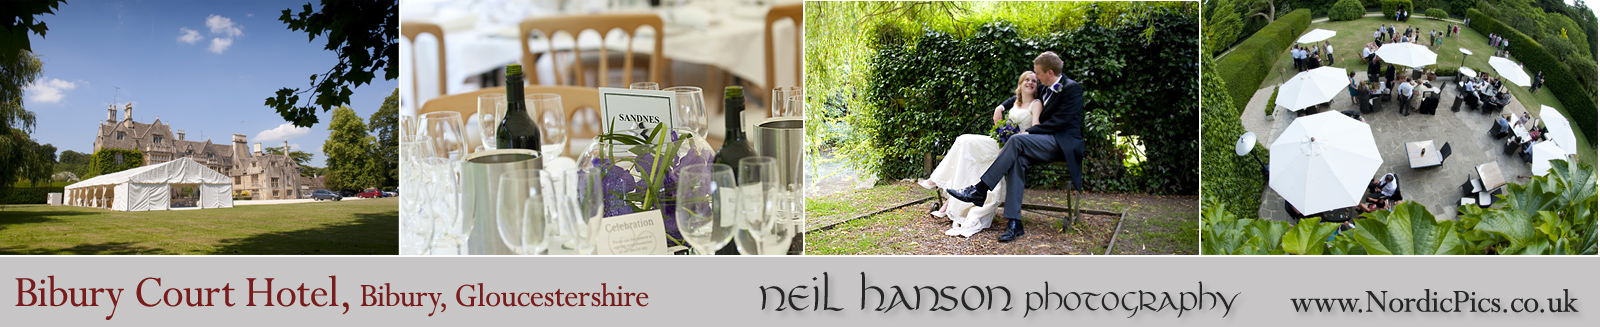 Neil Hanson photography provides contemporary Wedding Photography for The Bibury Court Hotel, Gloucestershire